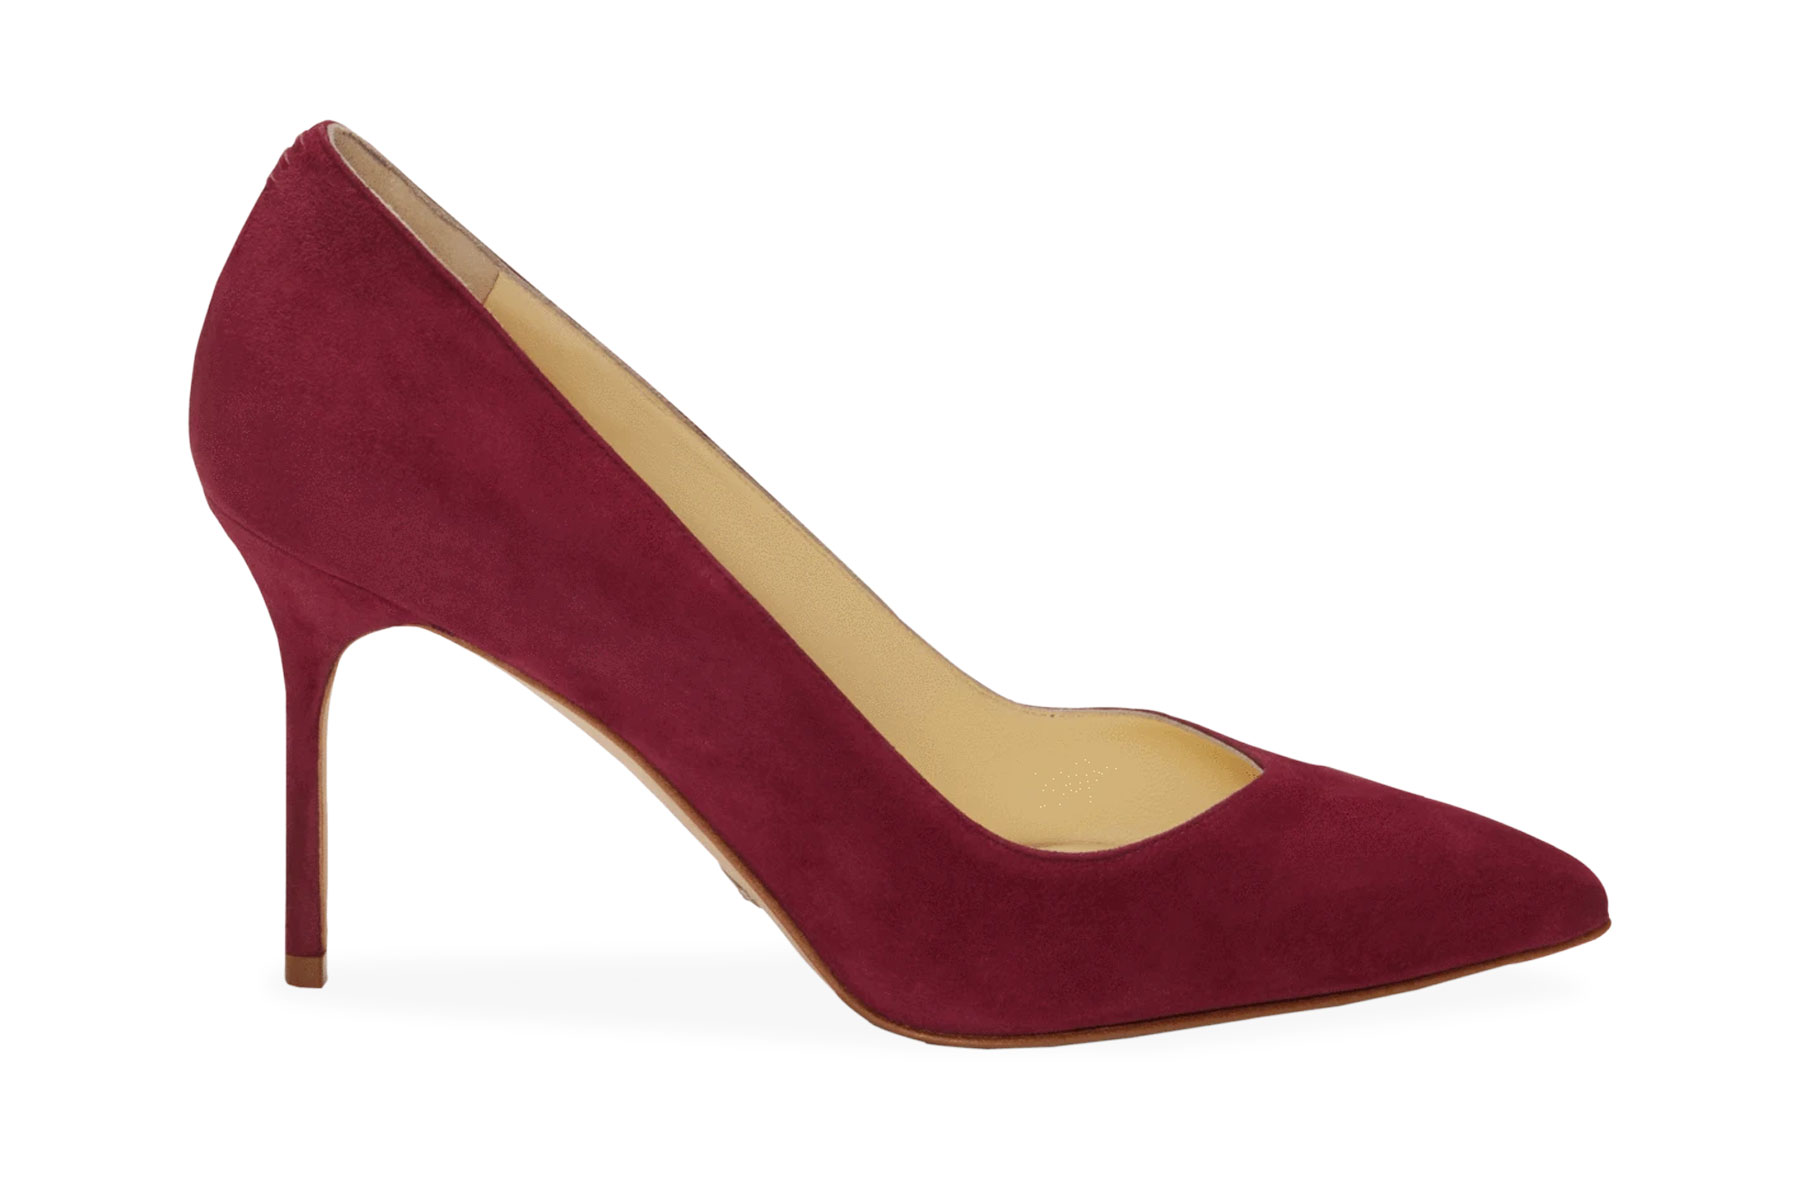 Dark red suede pointed toe pump